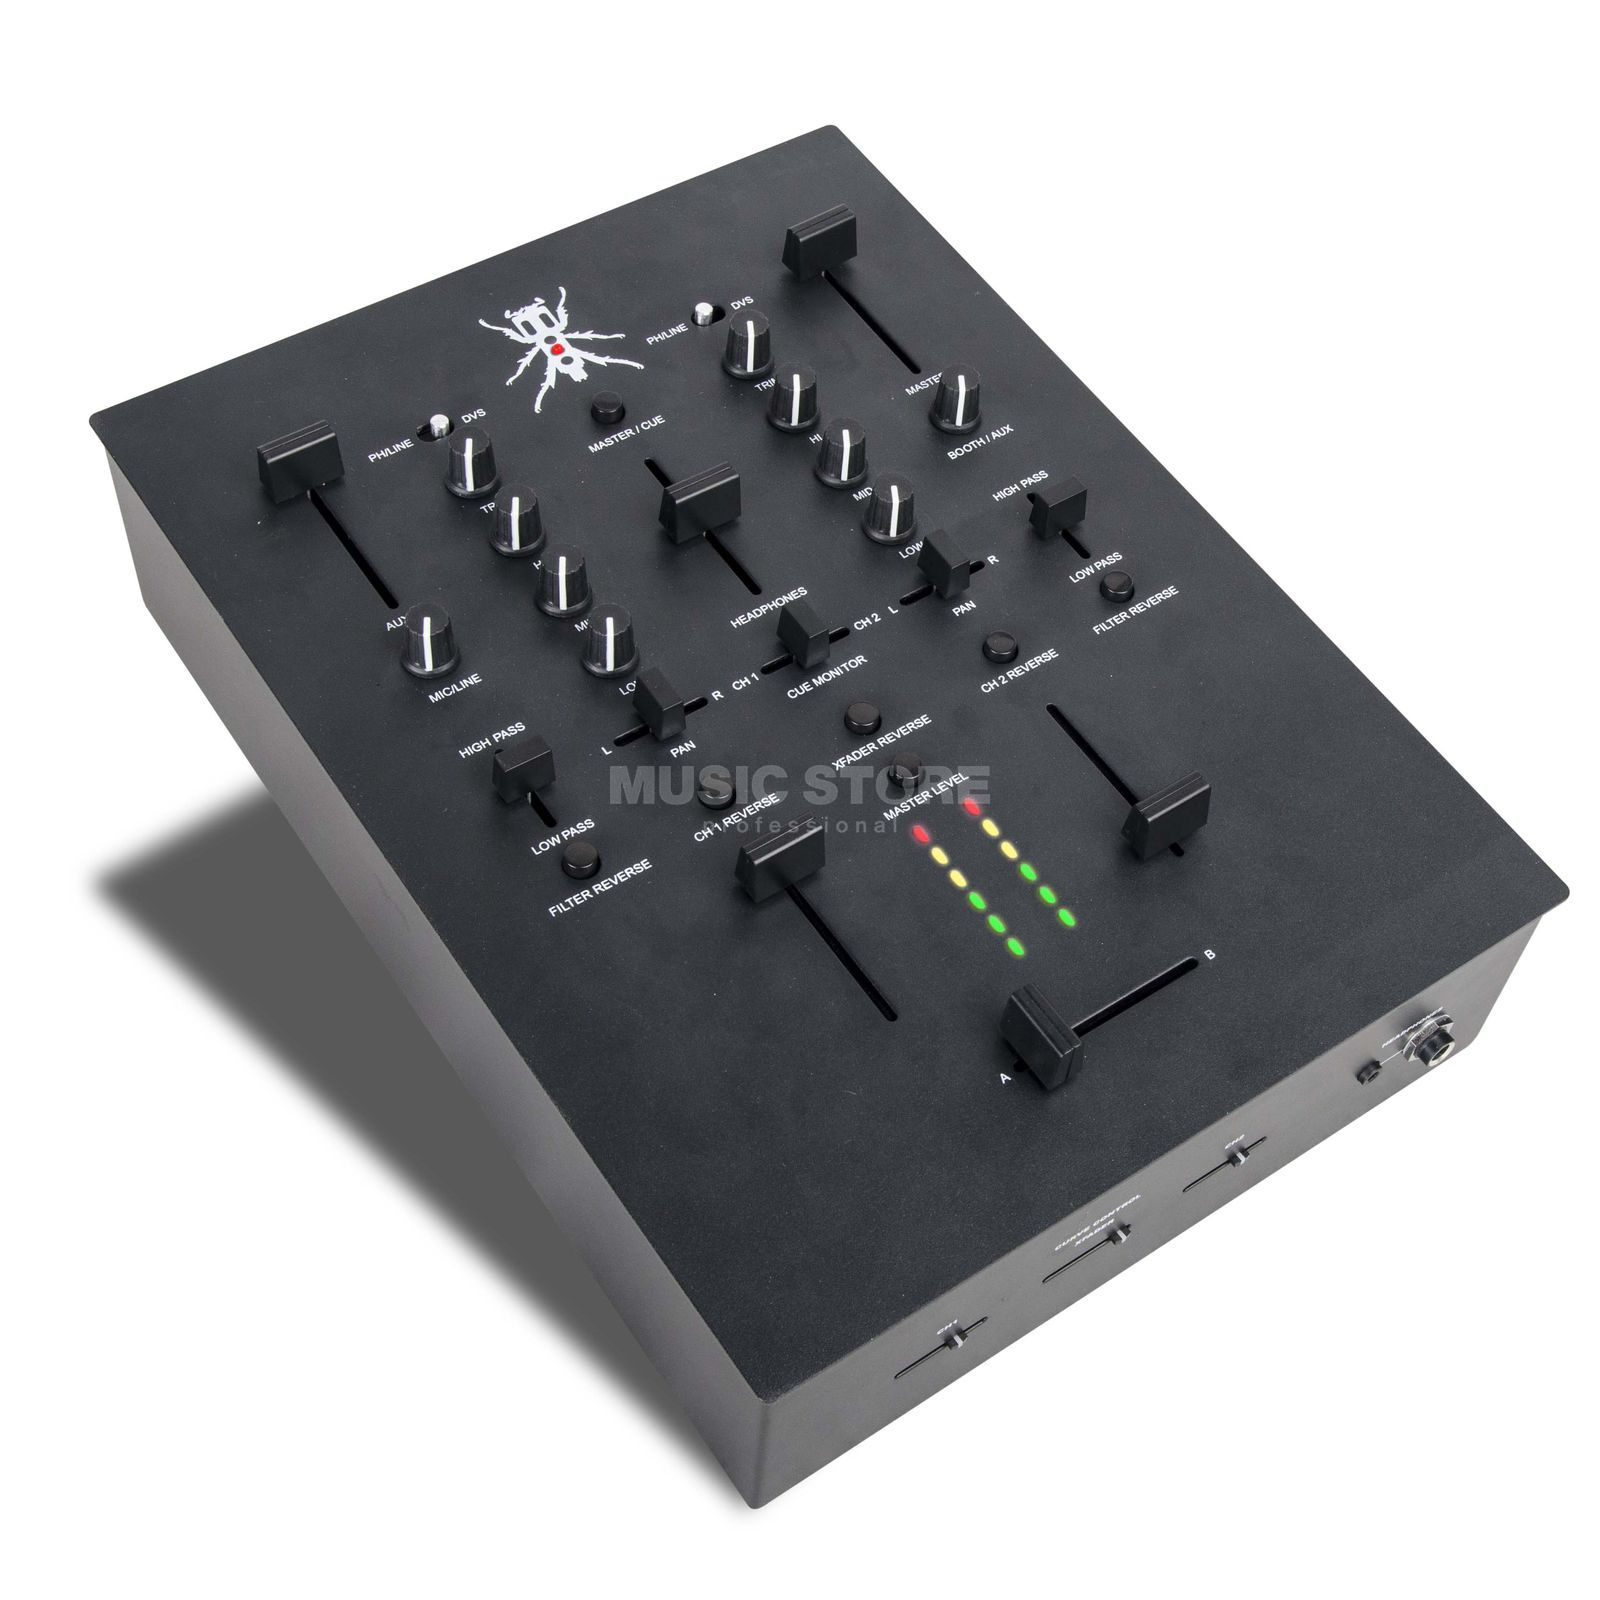 DJ-TECH TRX black Hochleistungs-Scratch-Mixer Product Image